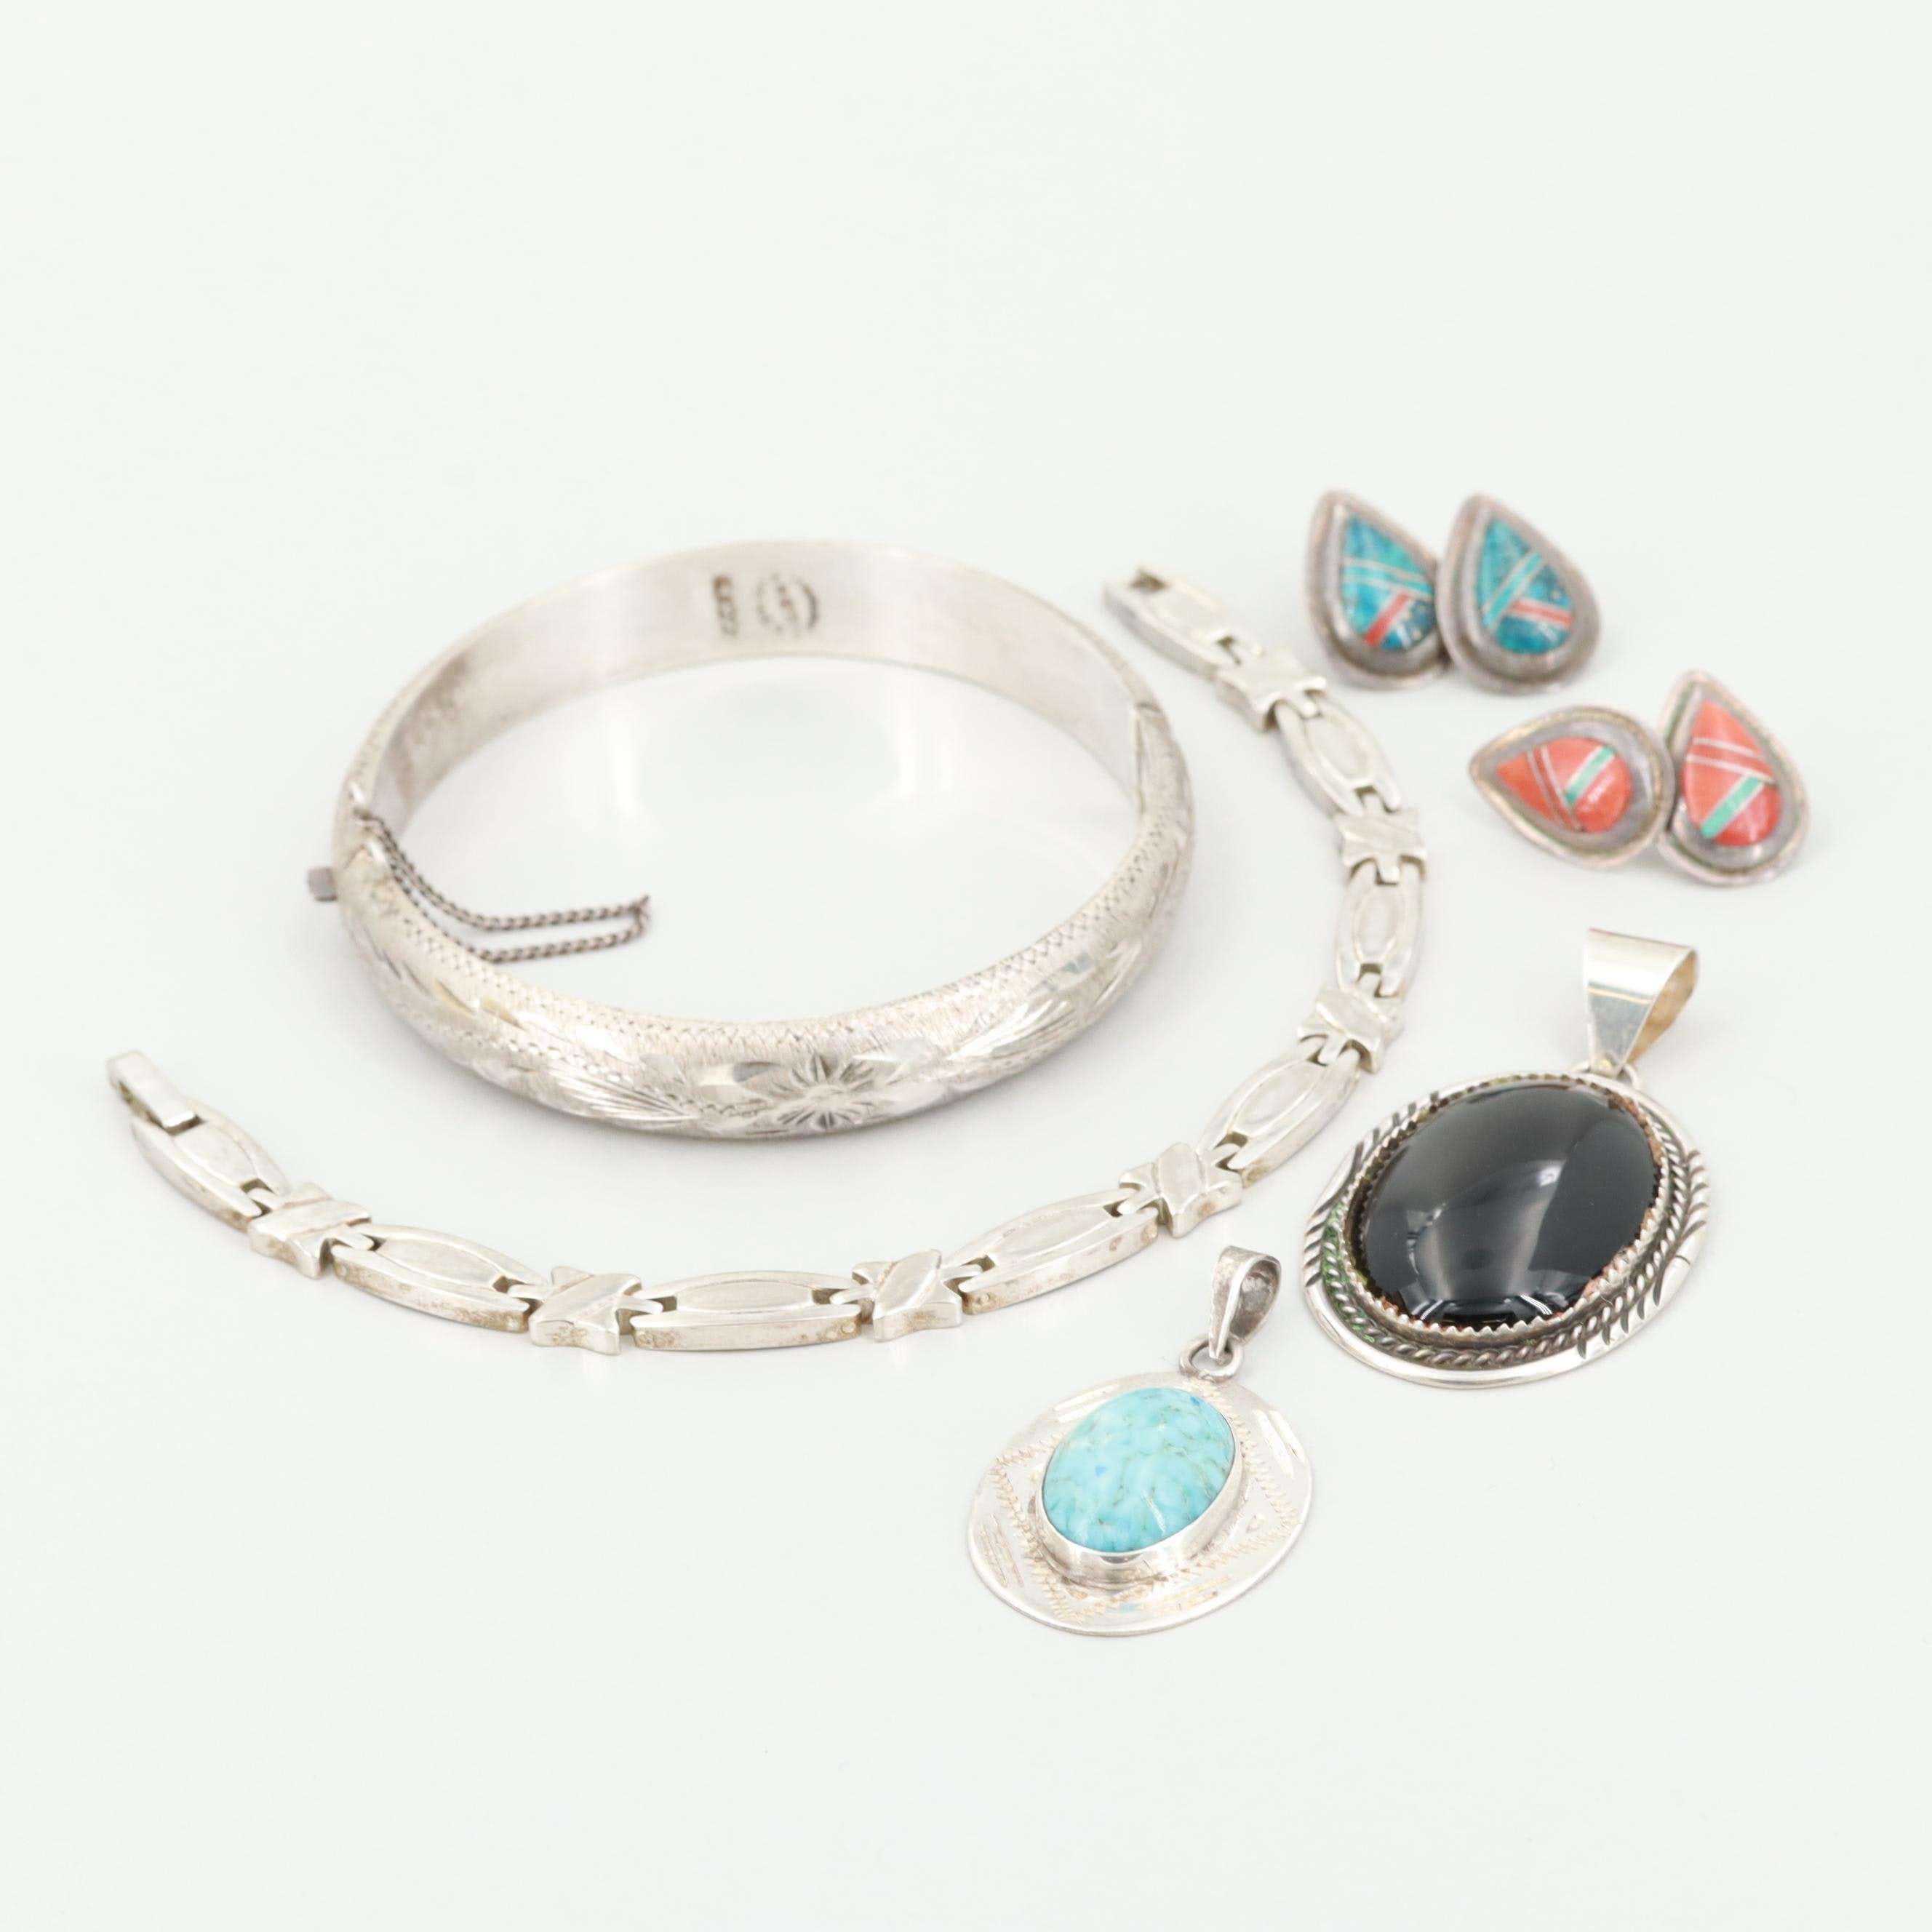 Sterling Silver Onyx, Coral and Turquoise Jewelry Featuring Mexican